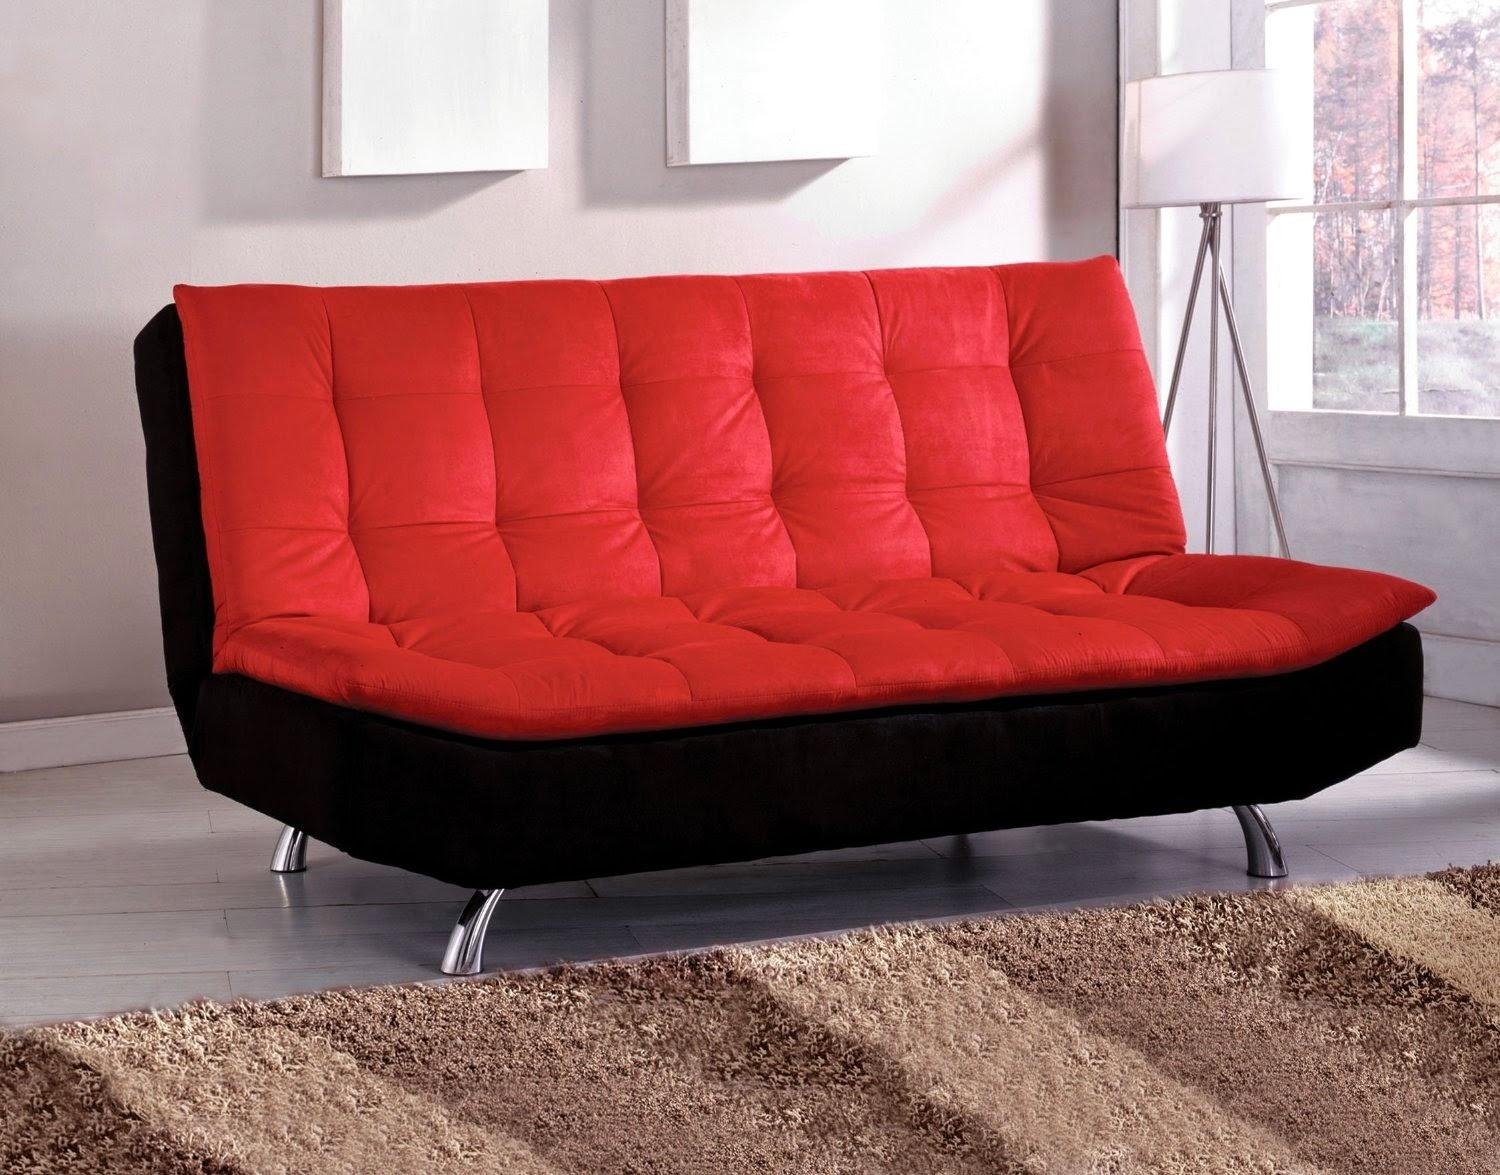 Red Couches: Red And Black Couches With Sofa Red And Black (Image 12 of 20)